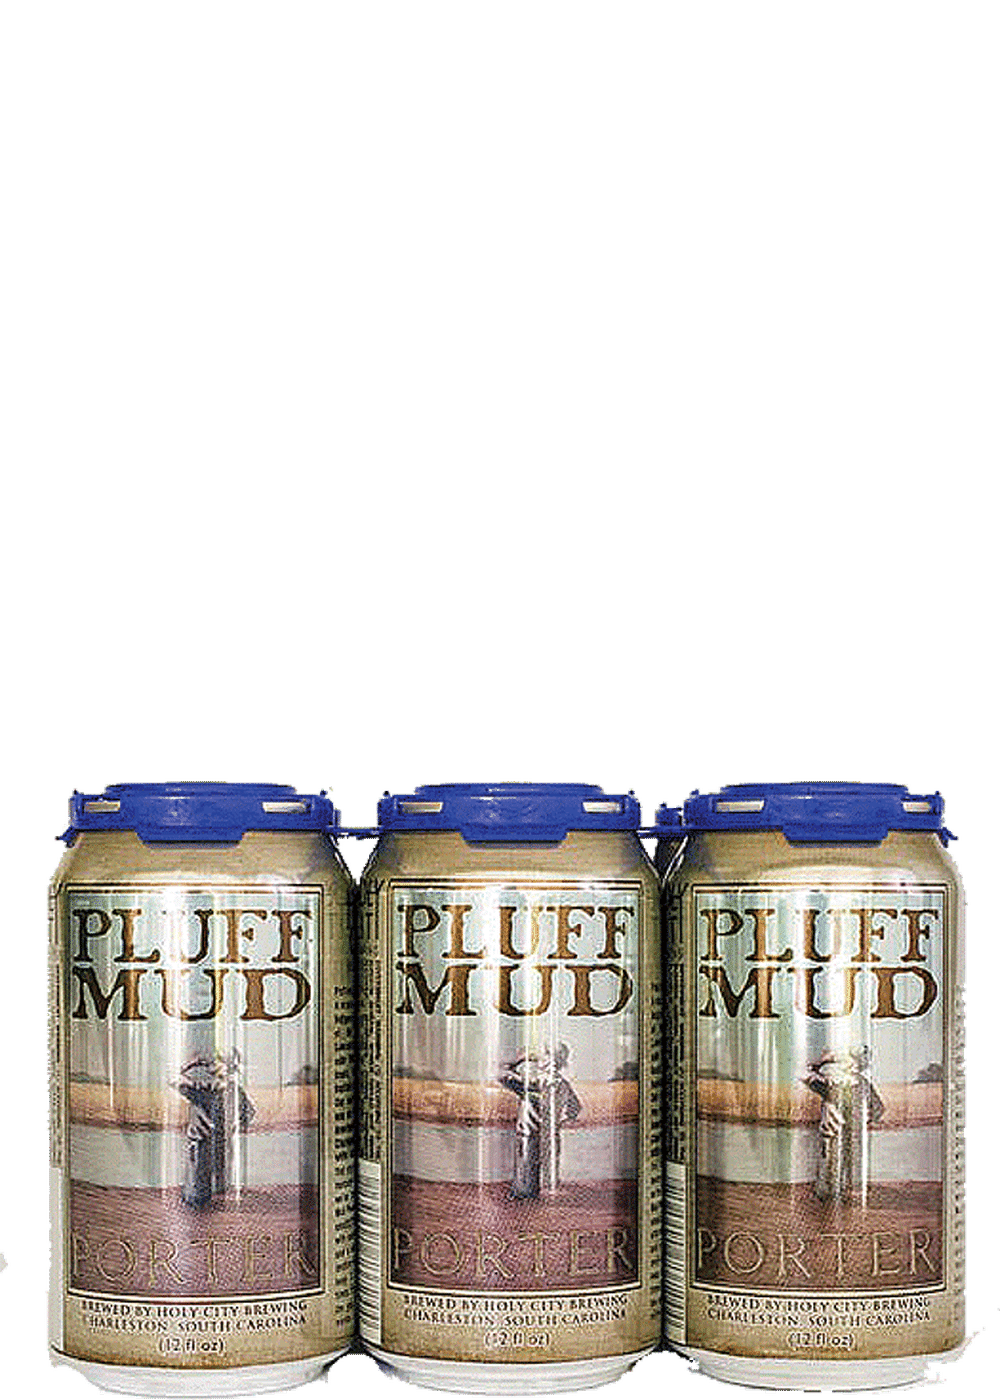 Holy City Pluff Mud Porter - 6-pack